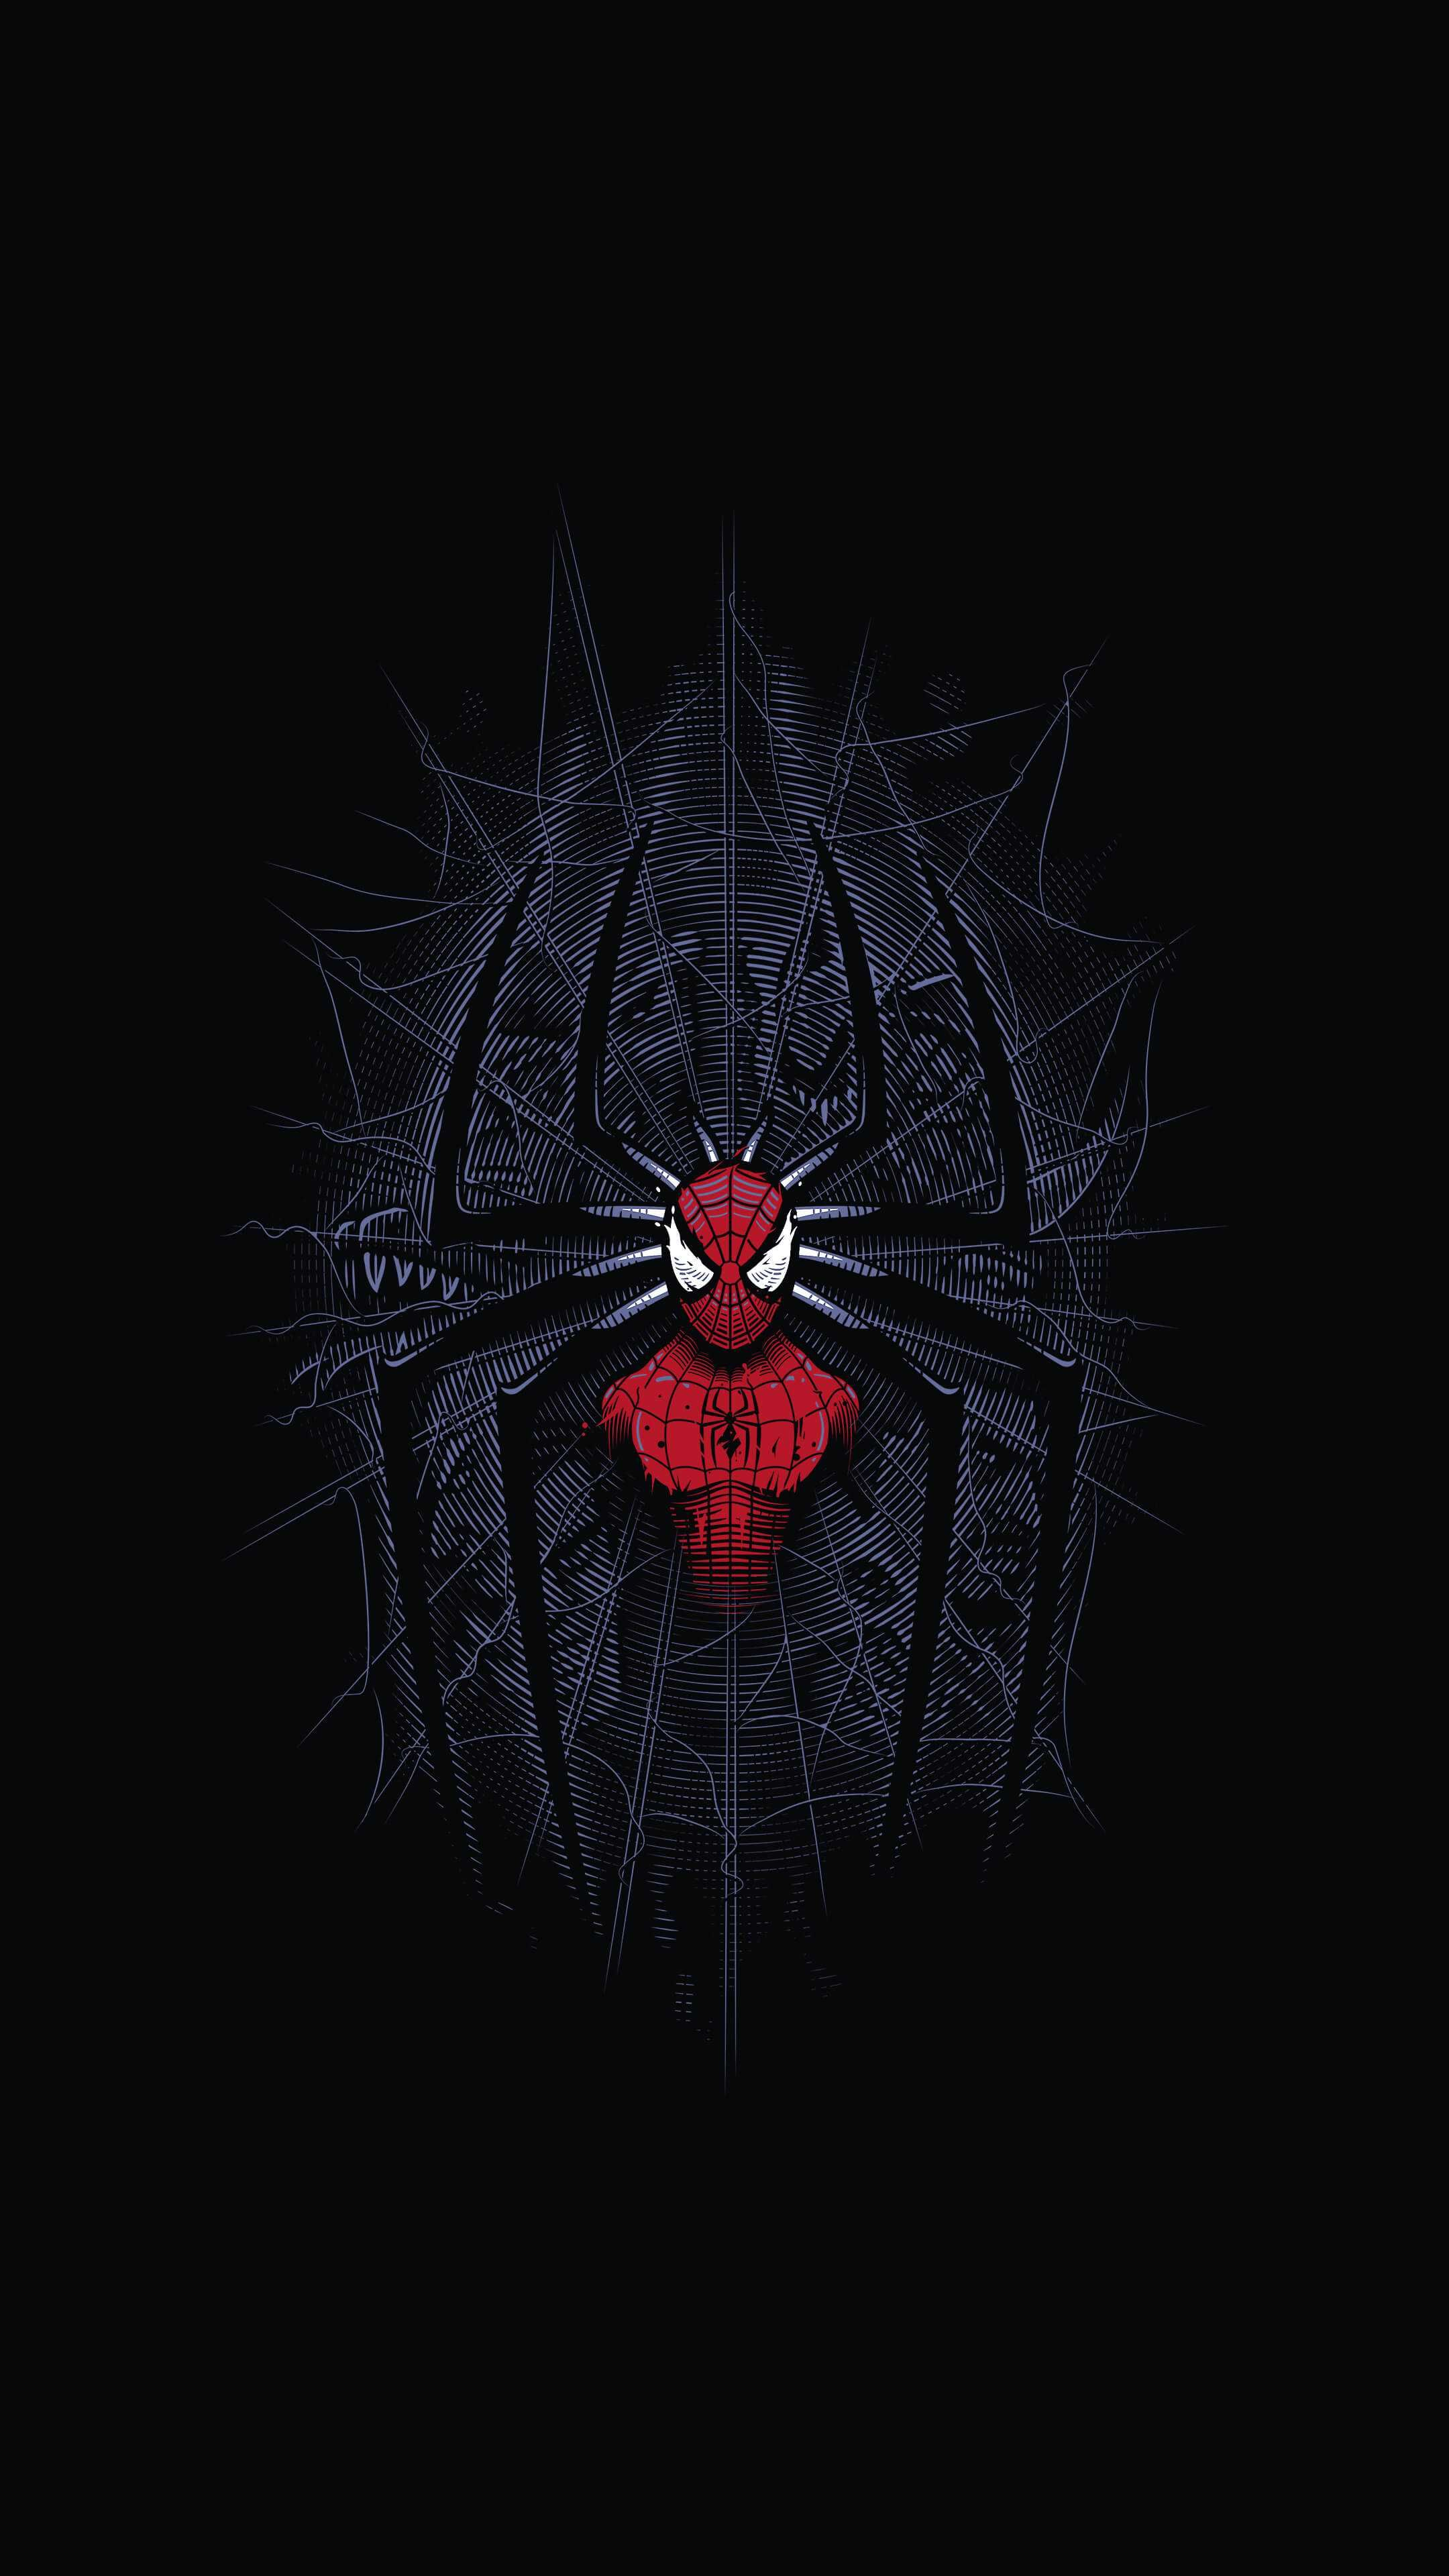 Spider man web iphone wallpaper marvel spiderman - Iphone 6 spiderman wallpaper ...